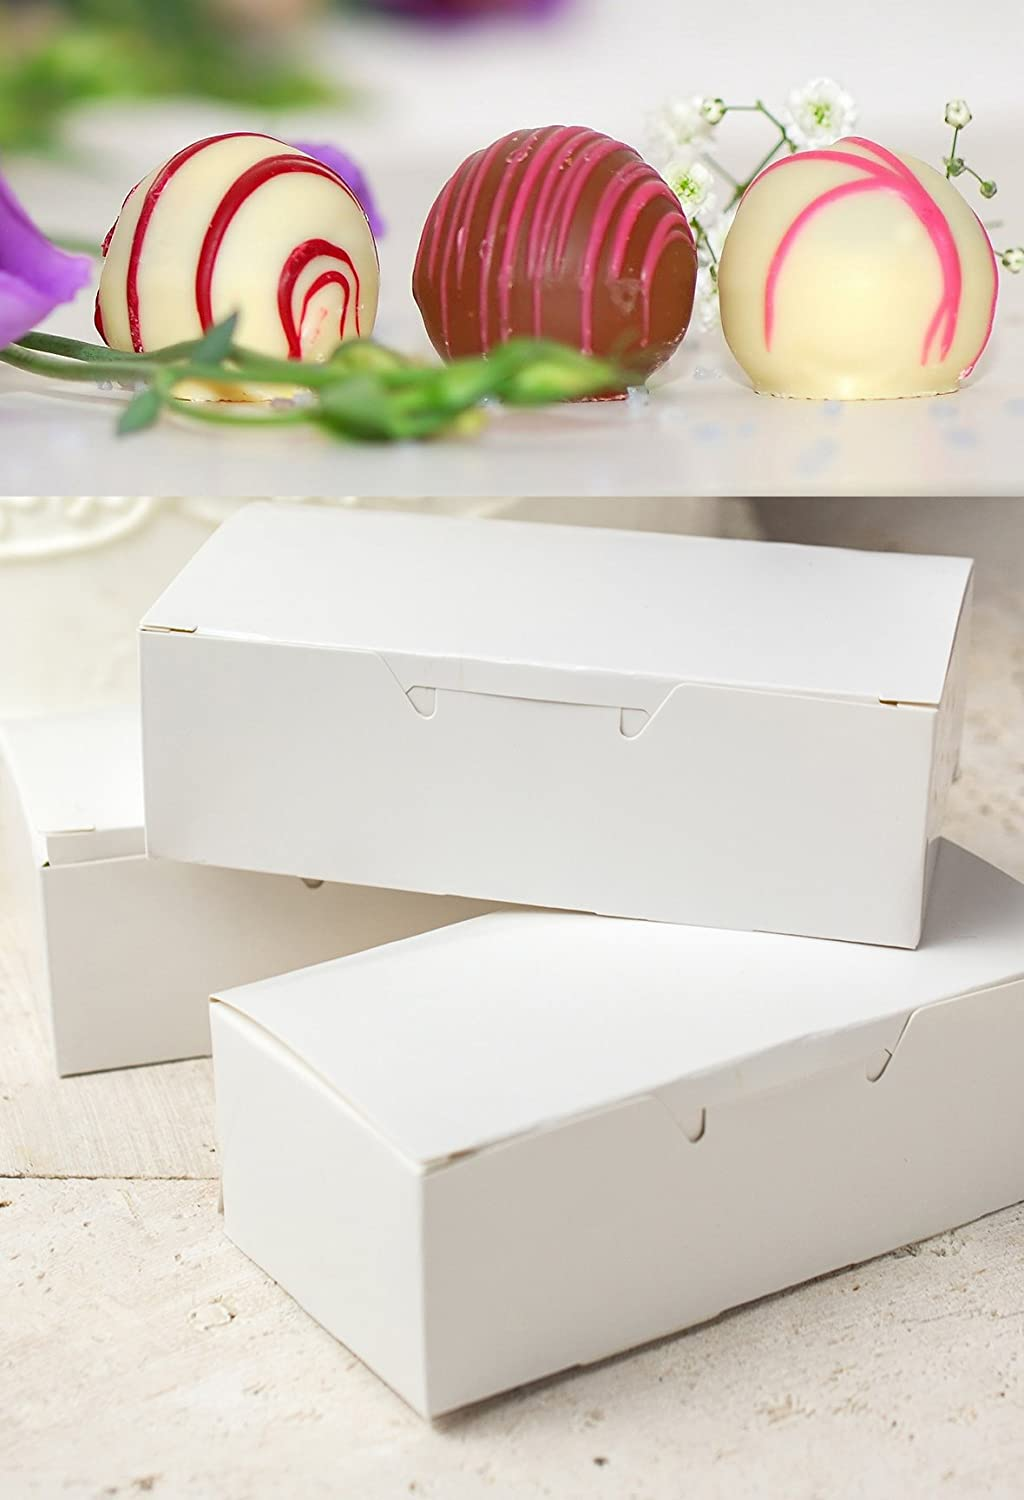 Amazon.com: Mini Cupcake Liners White & Candy Nuts Box Packaging ...